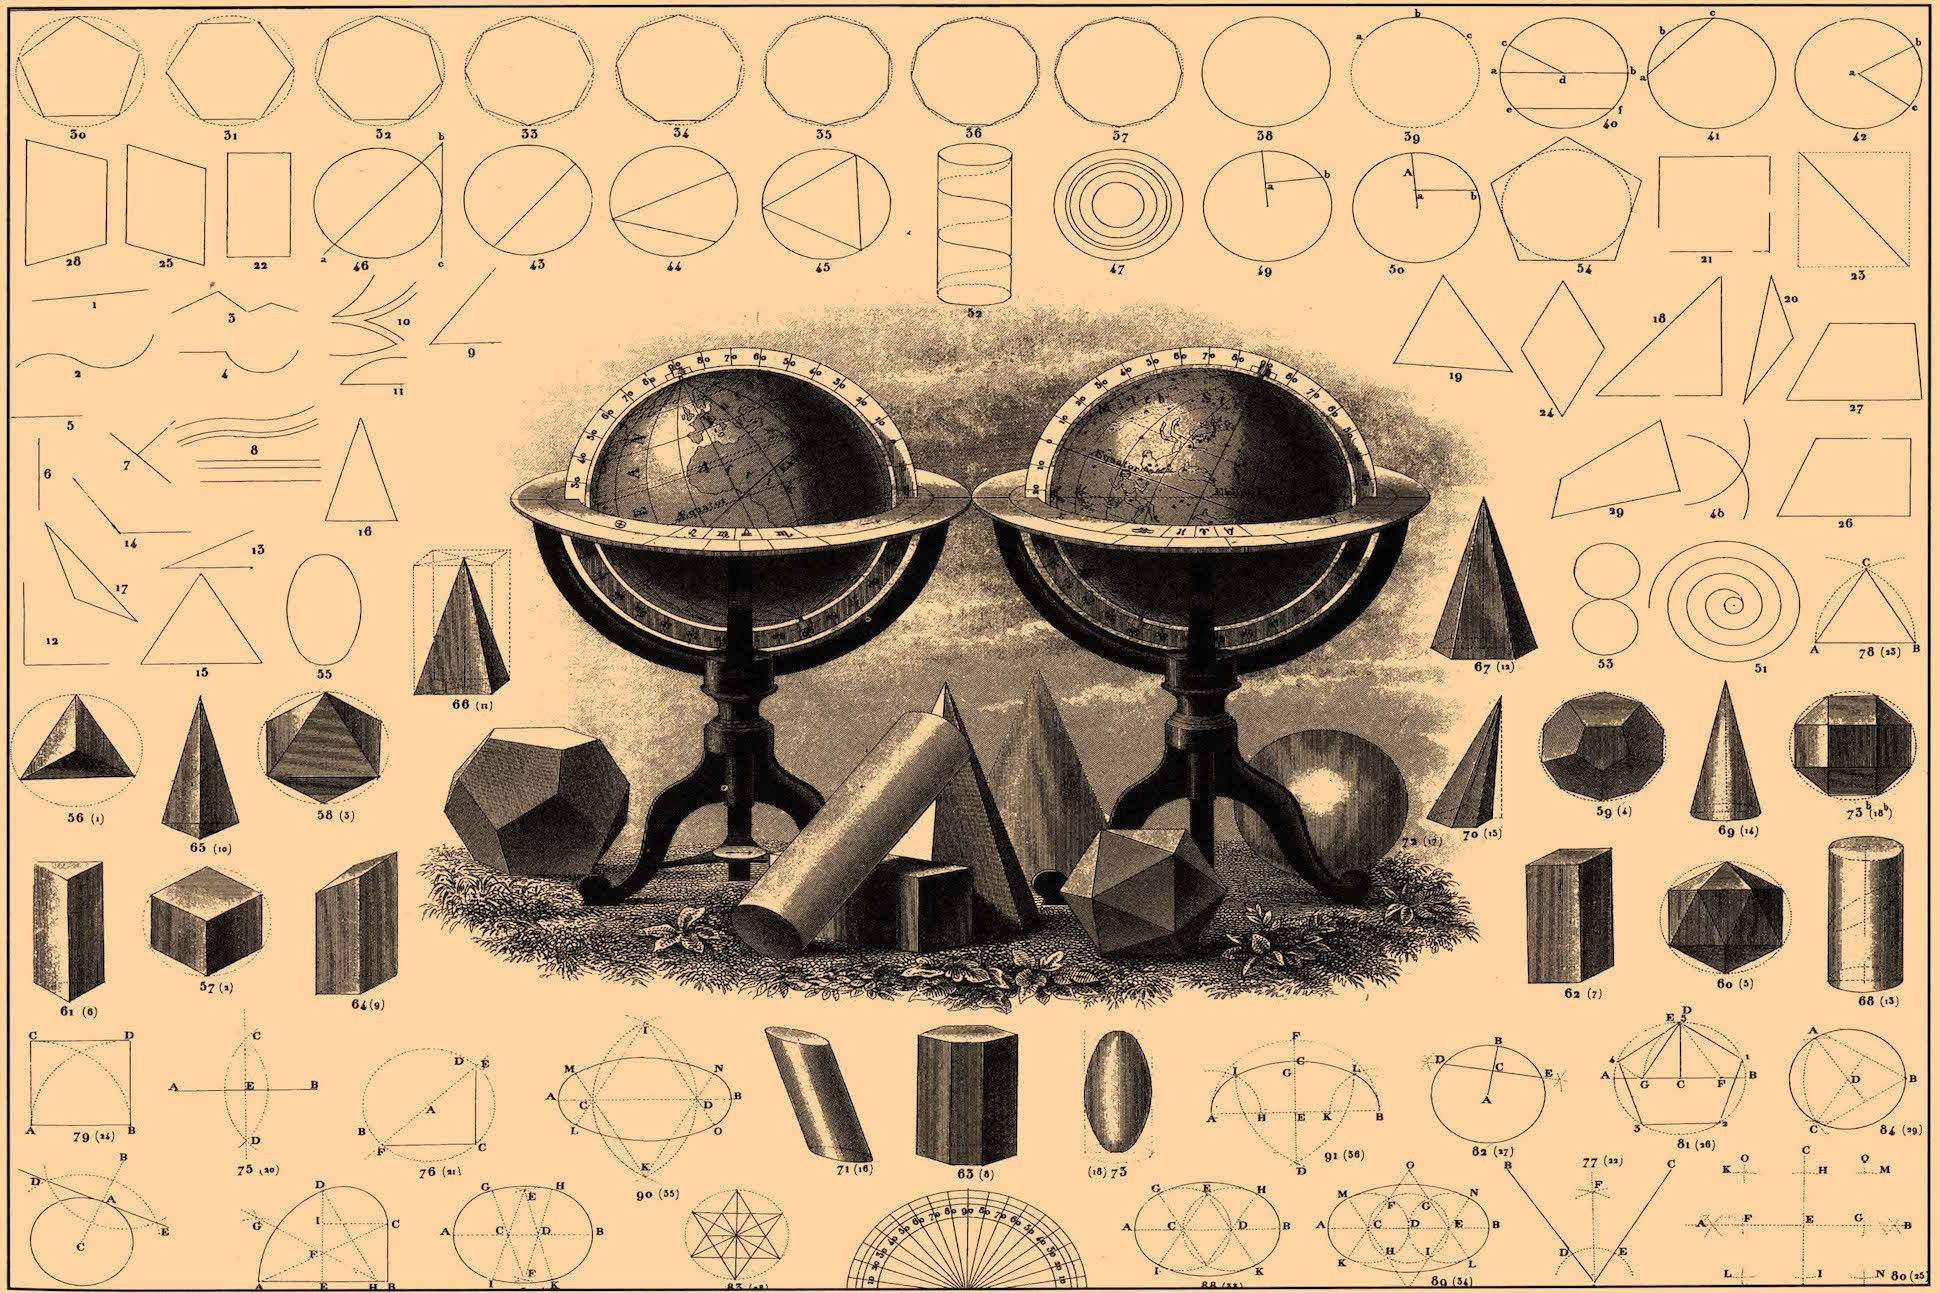 Image of encyclopedia excerpt, depicting several examples of geometric shapes and designs.